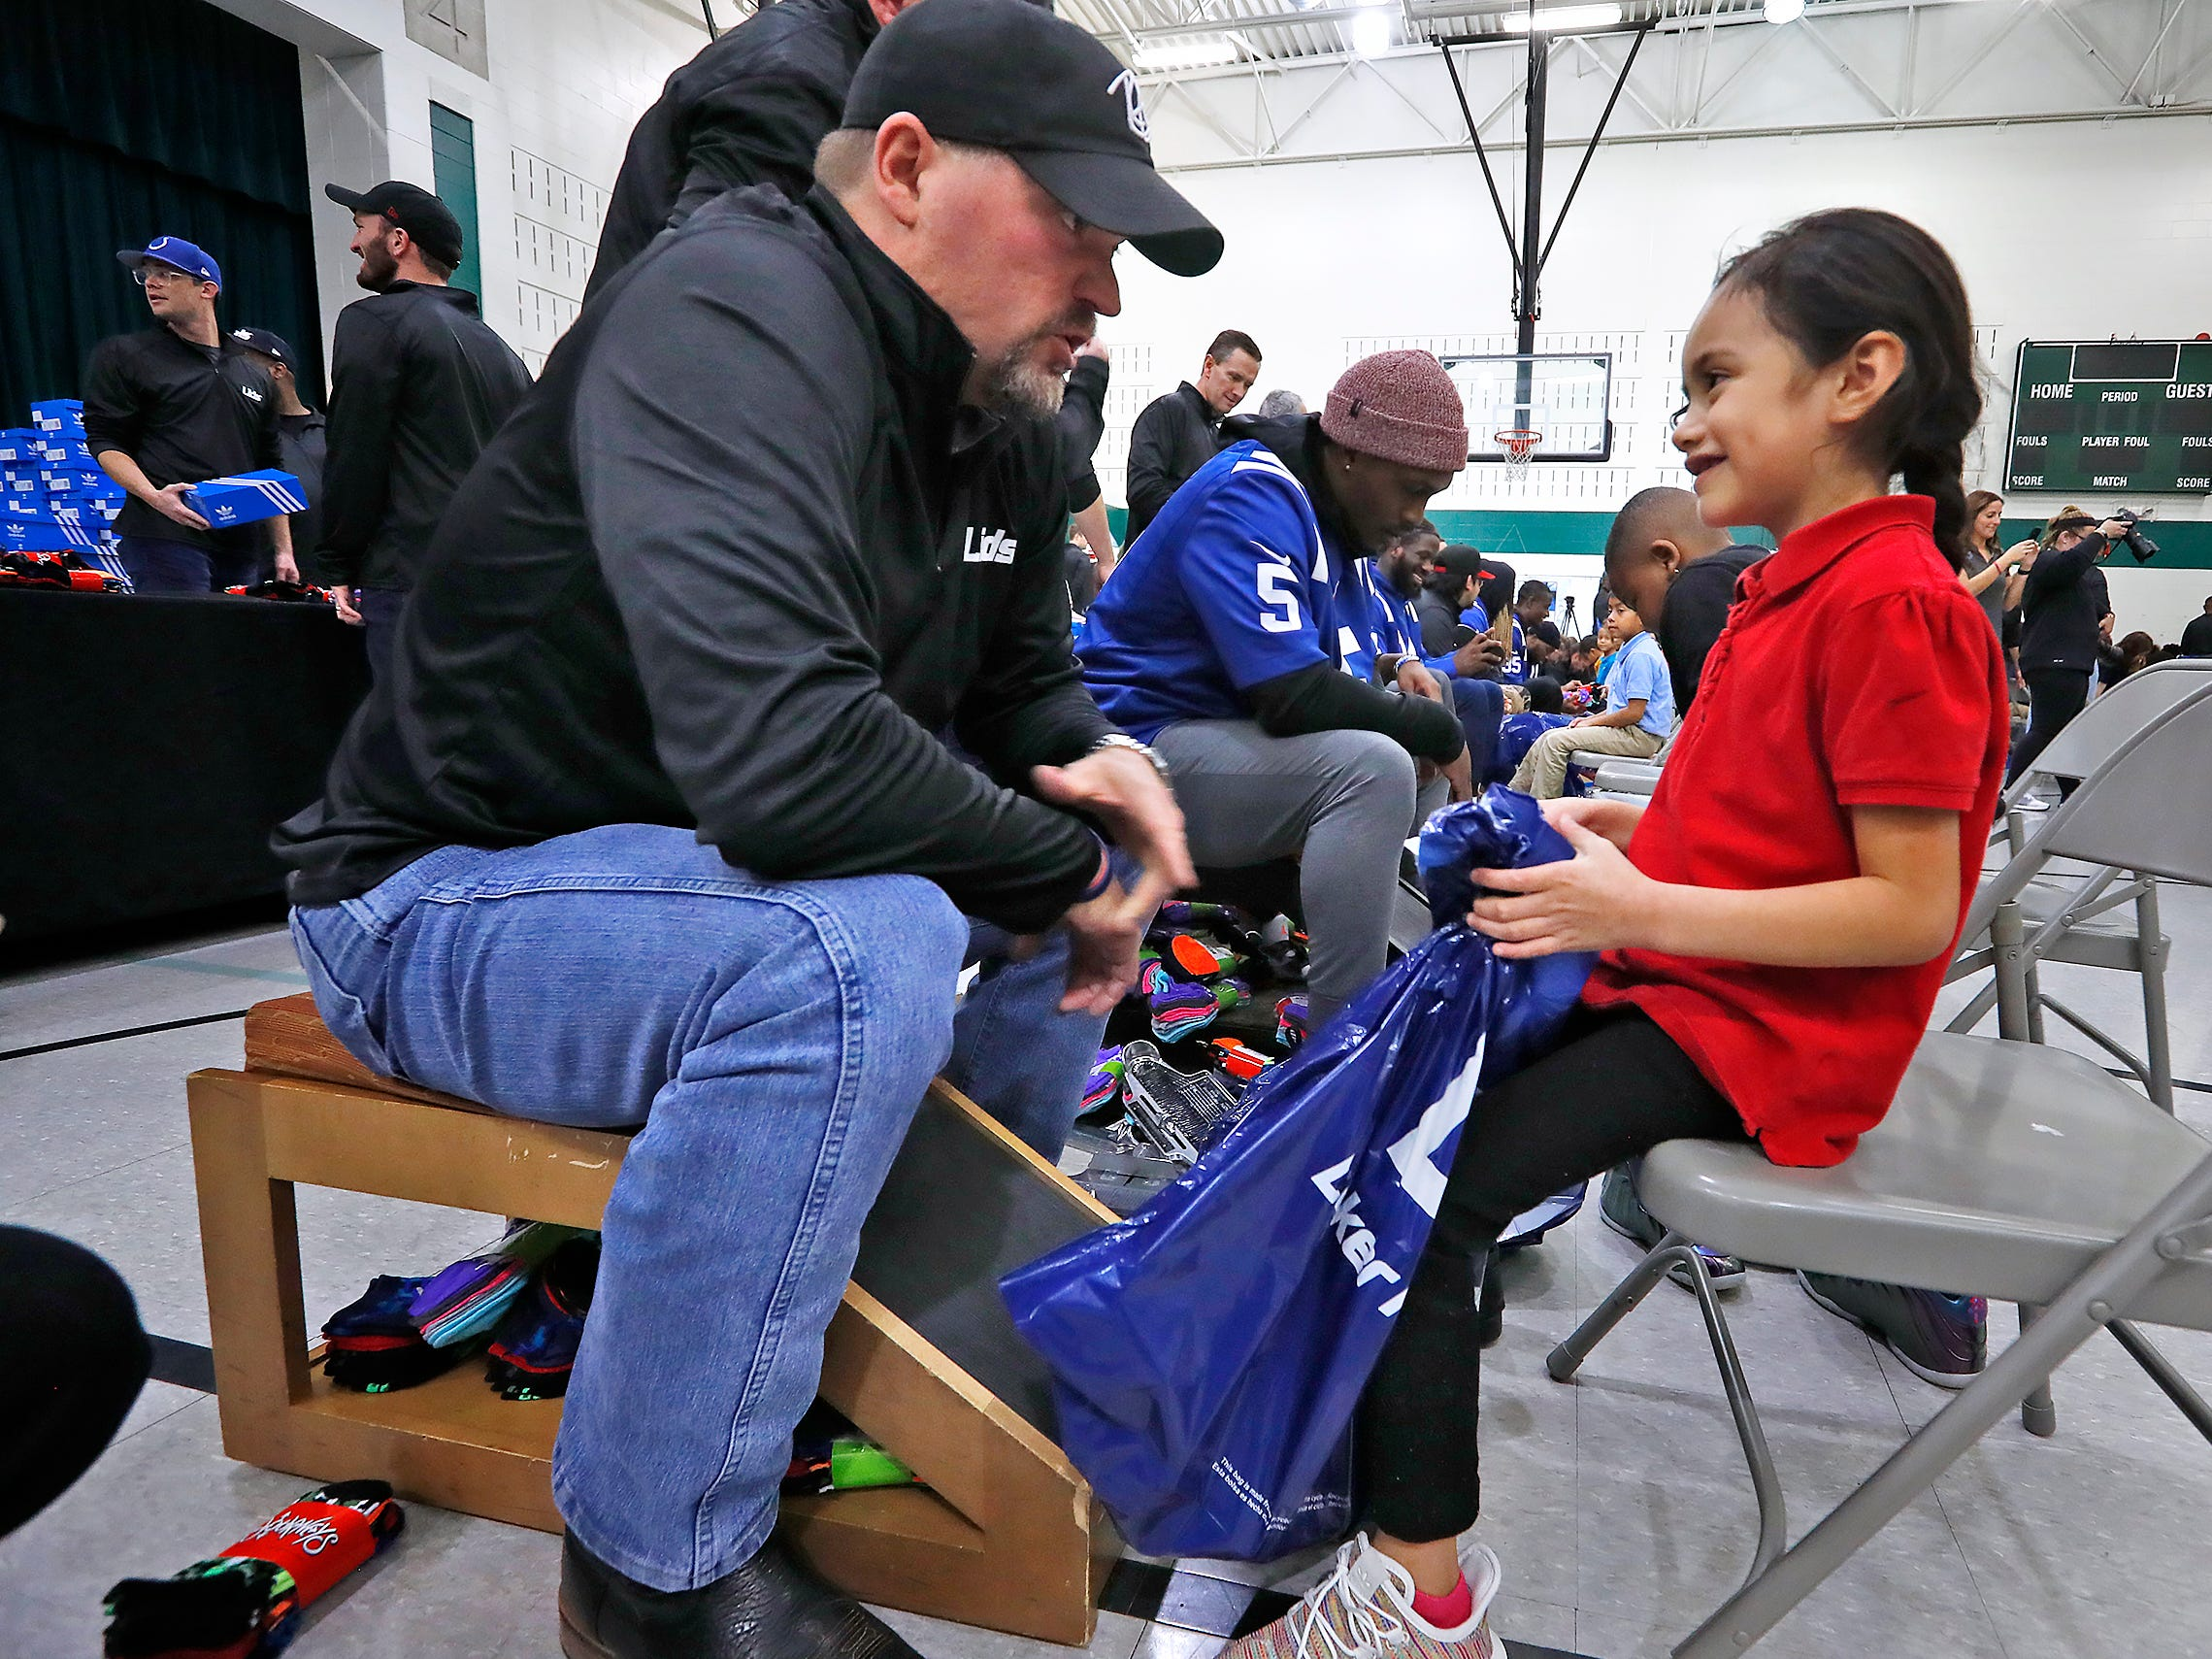 Keith Davis, left, fits Rebeca Perez, right, with a new pair of shoes at Brookside School 54, Monday, Dec. 3, 2018.  Colts players and staff joined as LIDS Sports and its parent company Genesco fit and gave new shoes, socks, hats, and snacks to students as part of the 13th annual Cold Feet, Warm Shoes event.